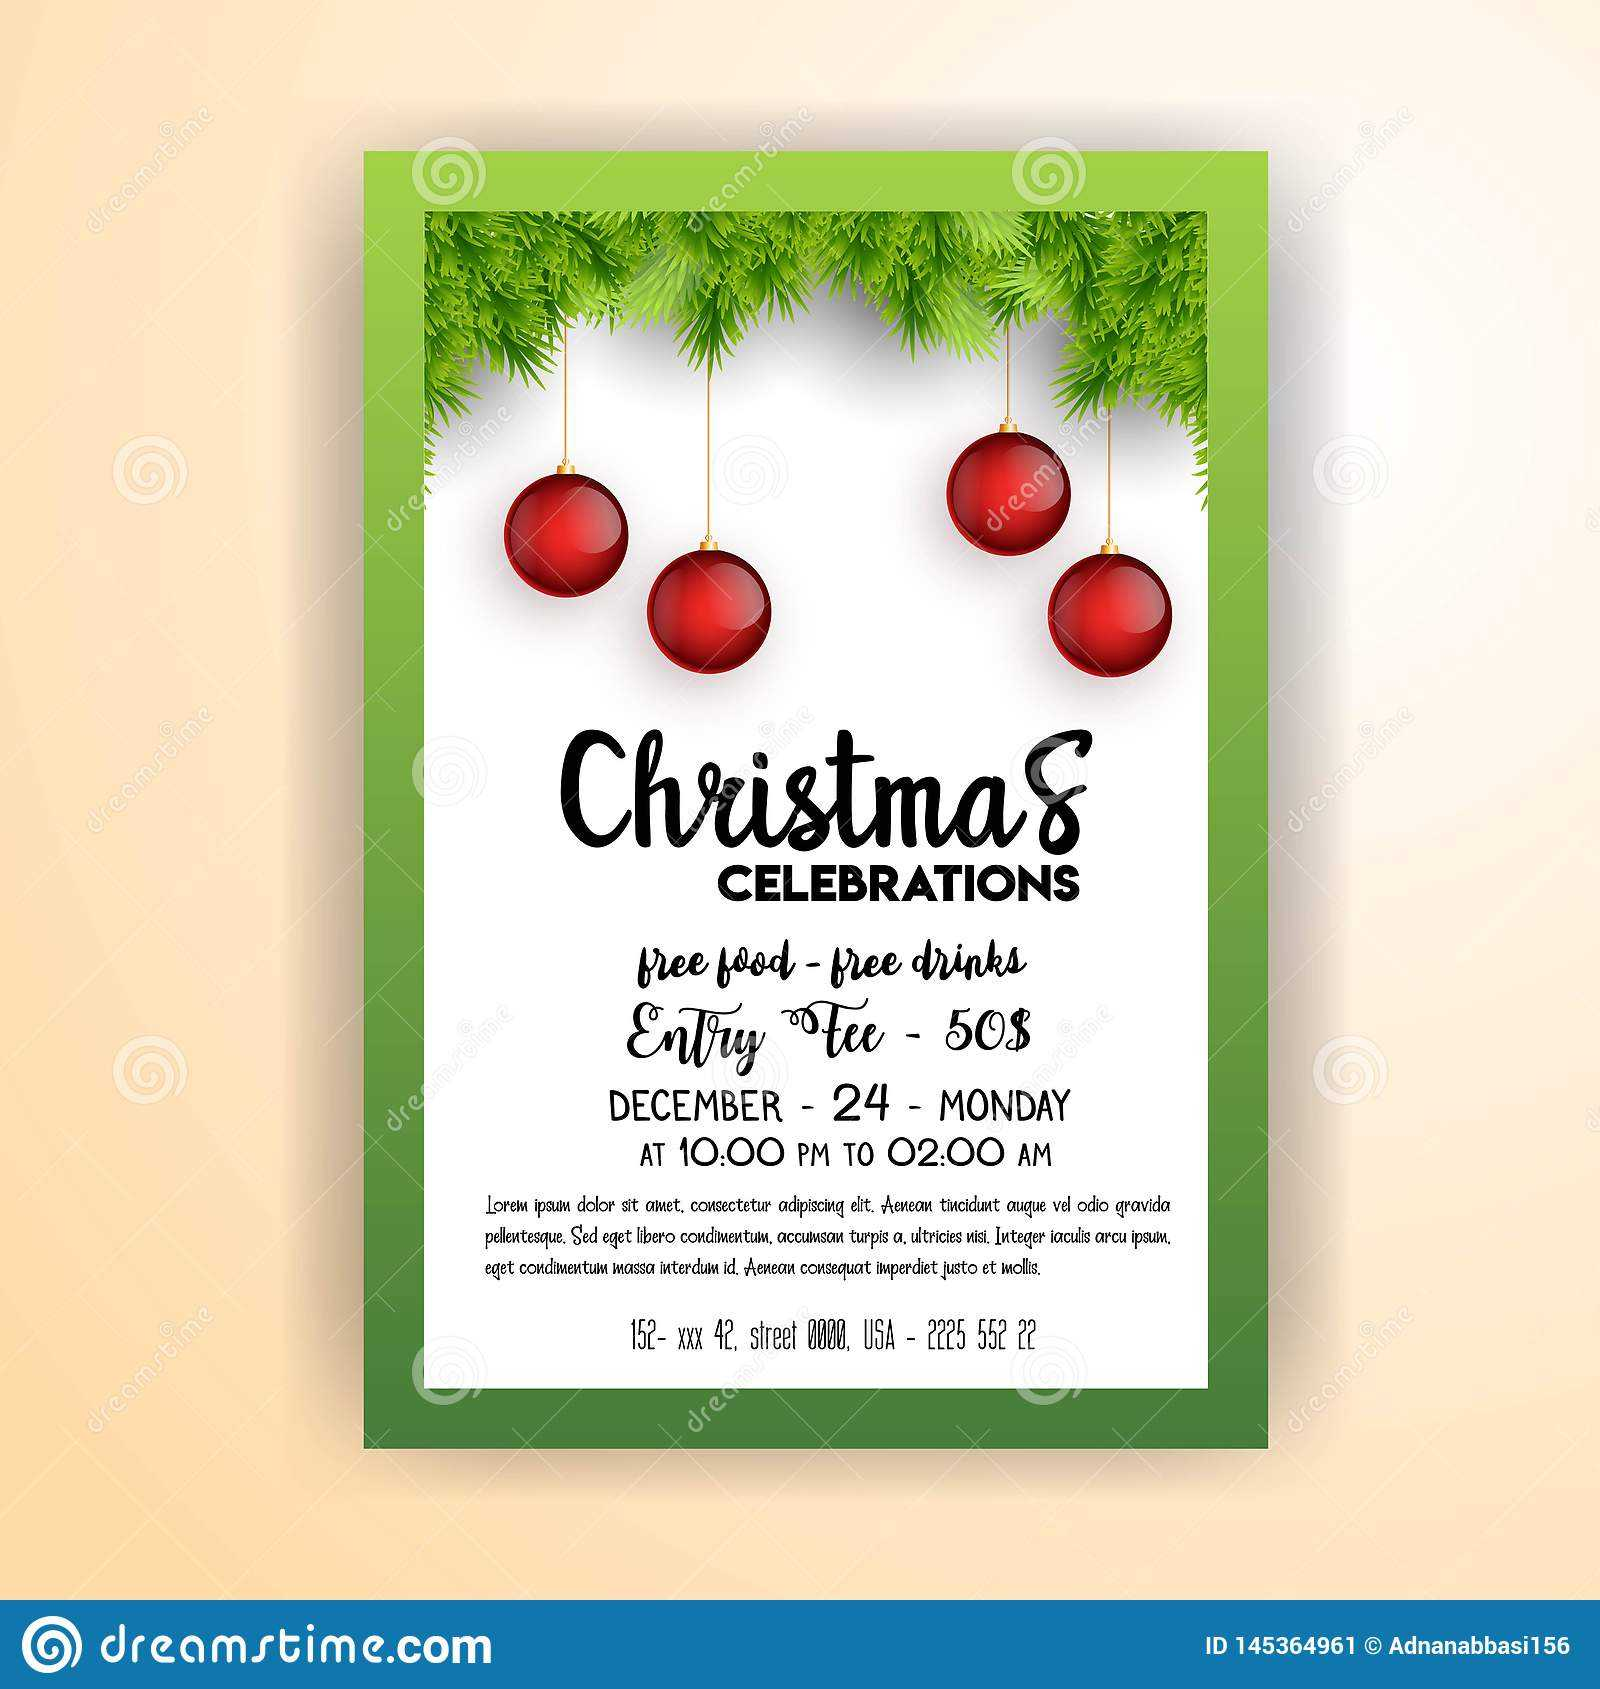 Vintage Christmas Party Flyer Template Stock Vector Throughout Free Christmas Party Flyer Templates